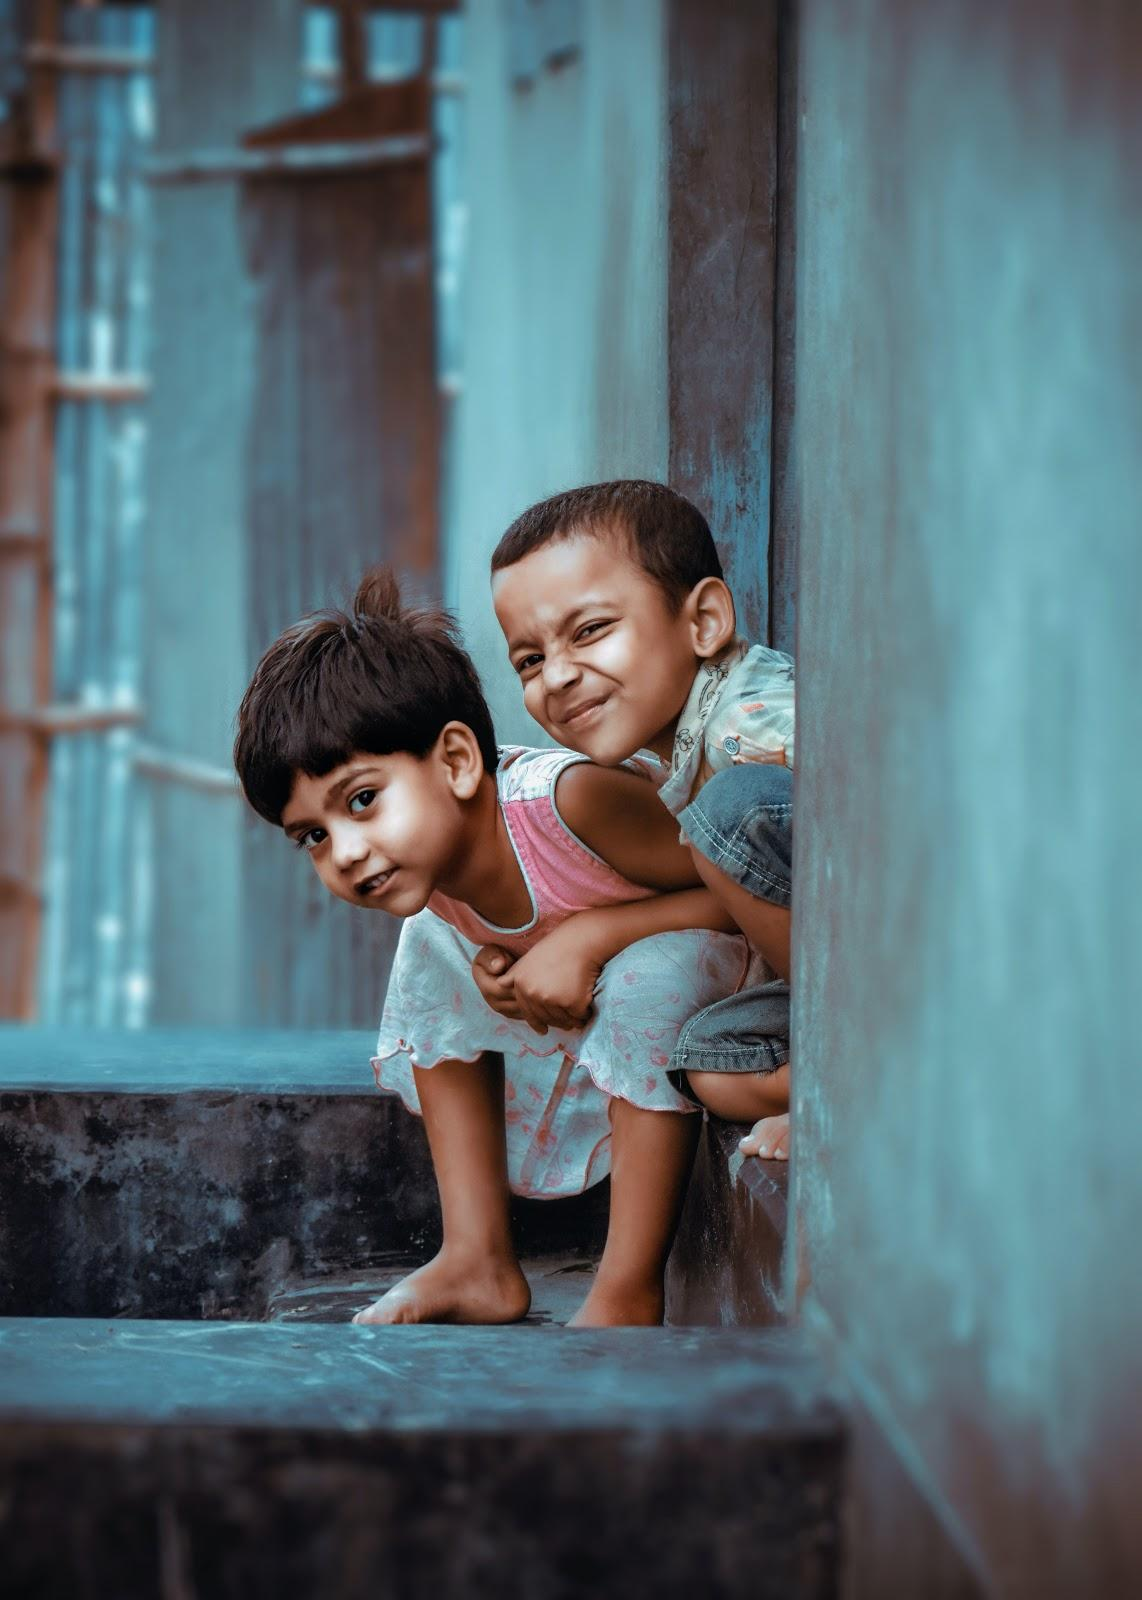 two children sitting outside the house, smiling at the camera